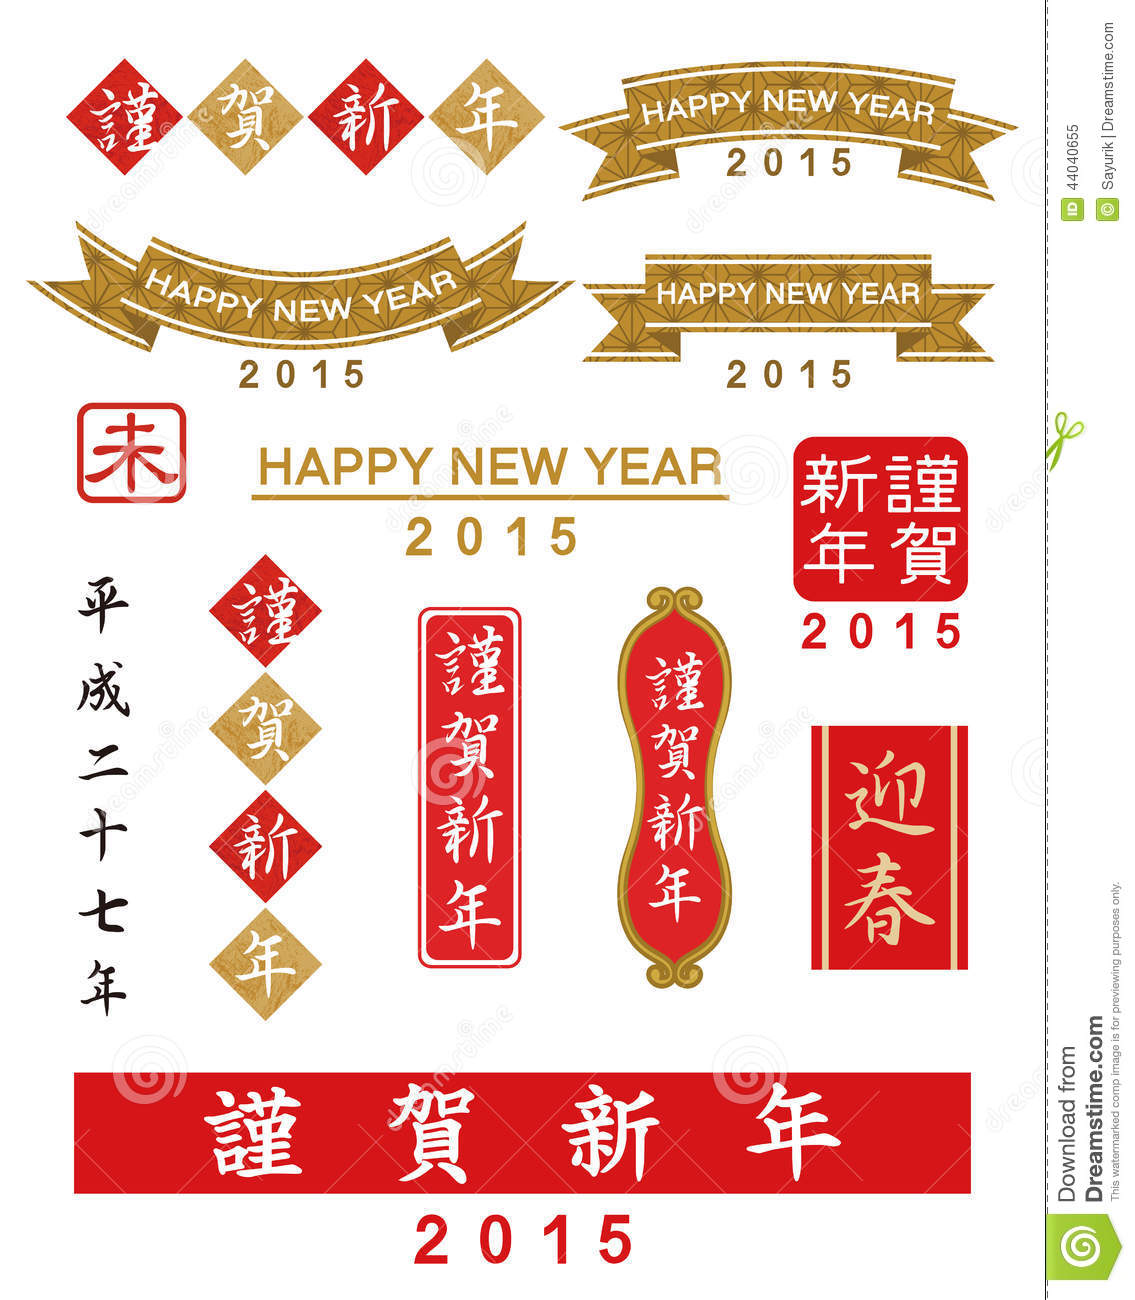 Japanese new years words set stock vector illustration of japanese text about new year greeting m4hsunfo